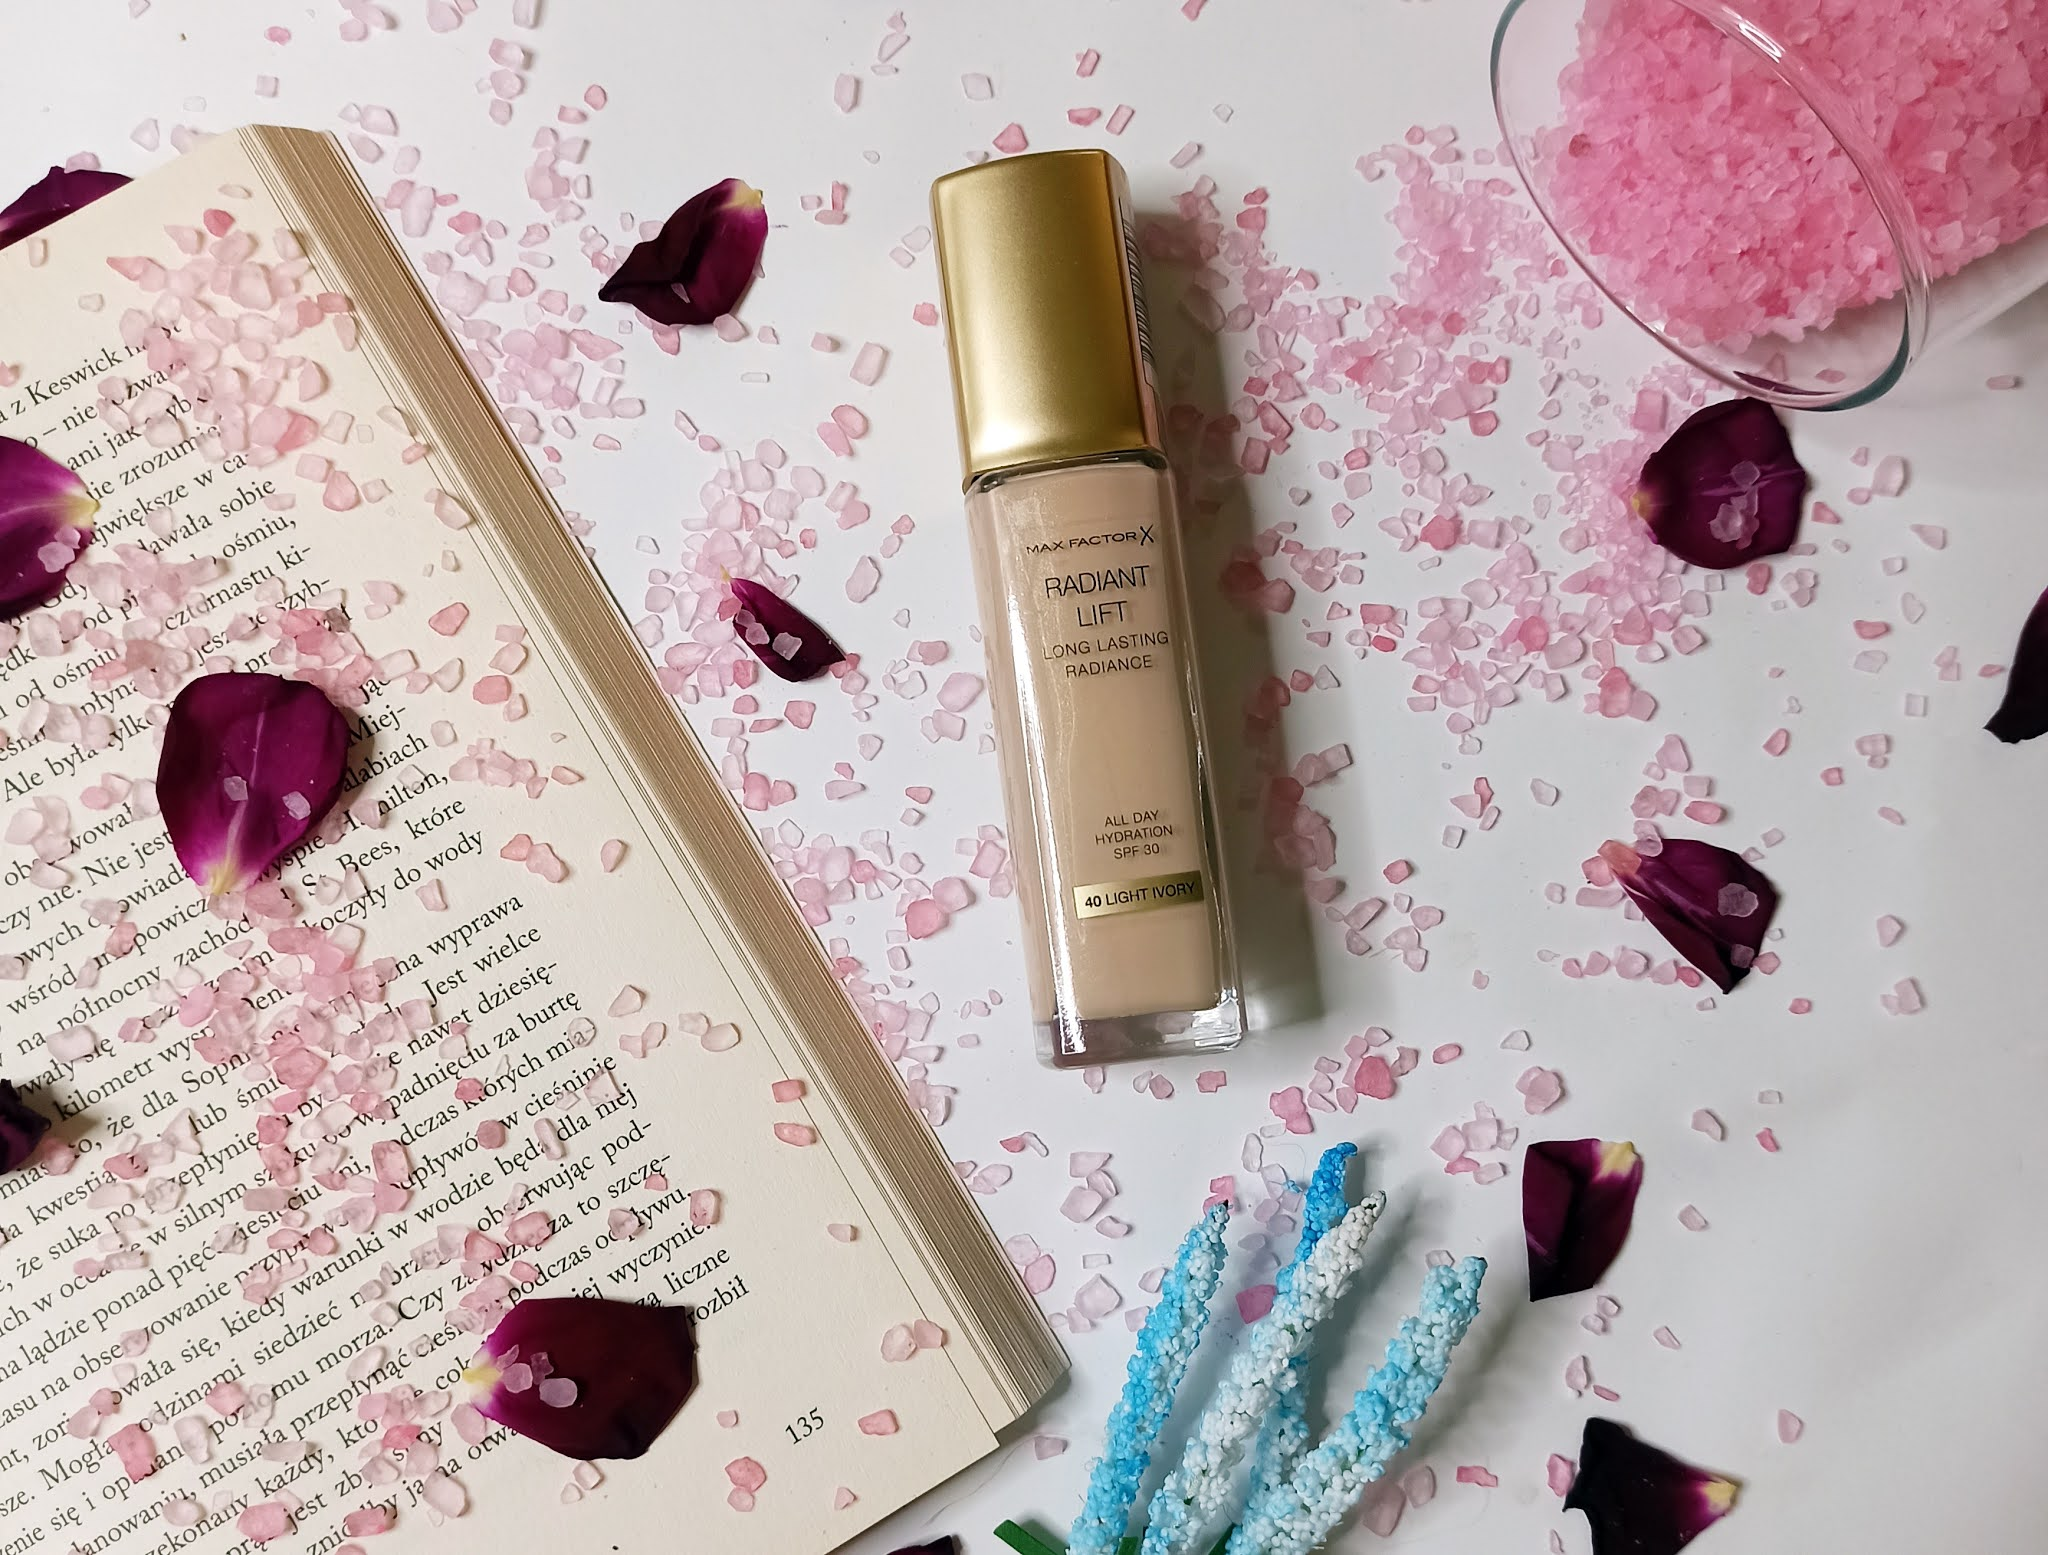 Podkład od Max Factor Radiant Lift Long Lasting Radiance - opinia